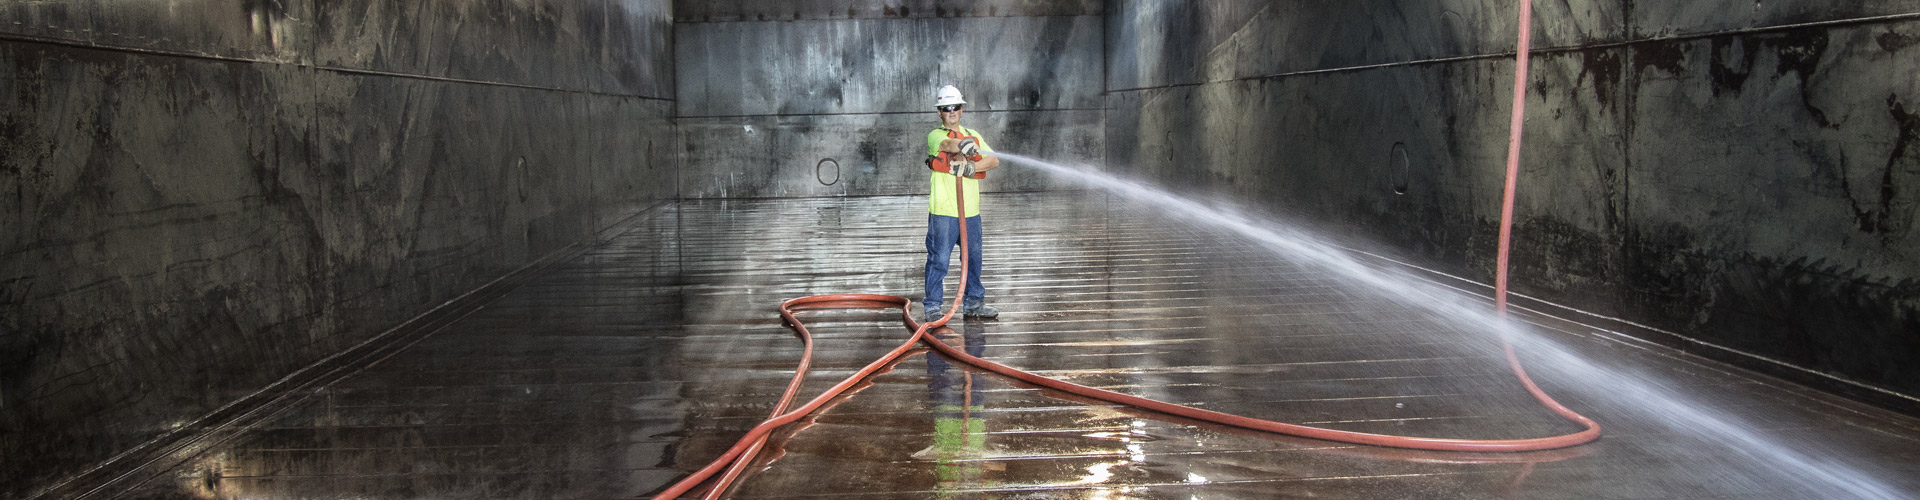 harbor services, barge cleaning, upper mississippi river services, inland waterway services, inland river services, hopper barge cleaning